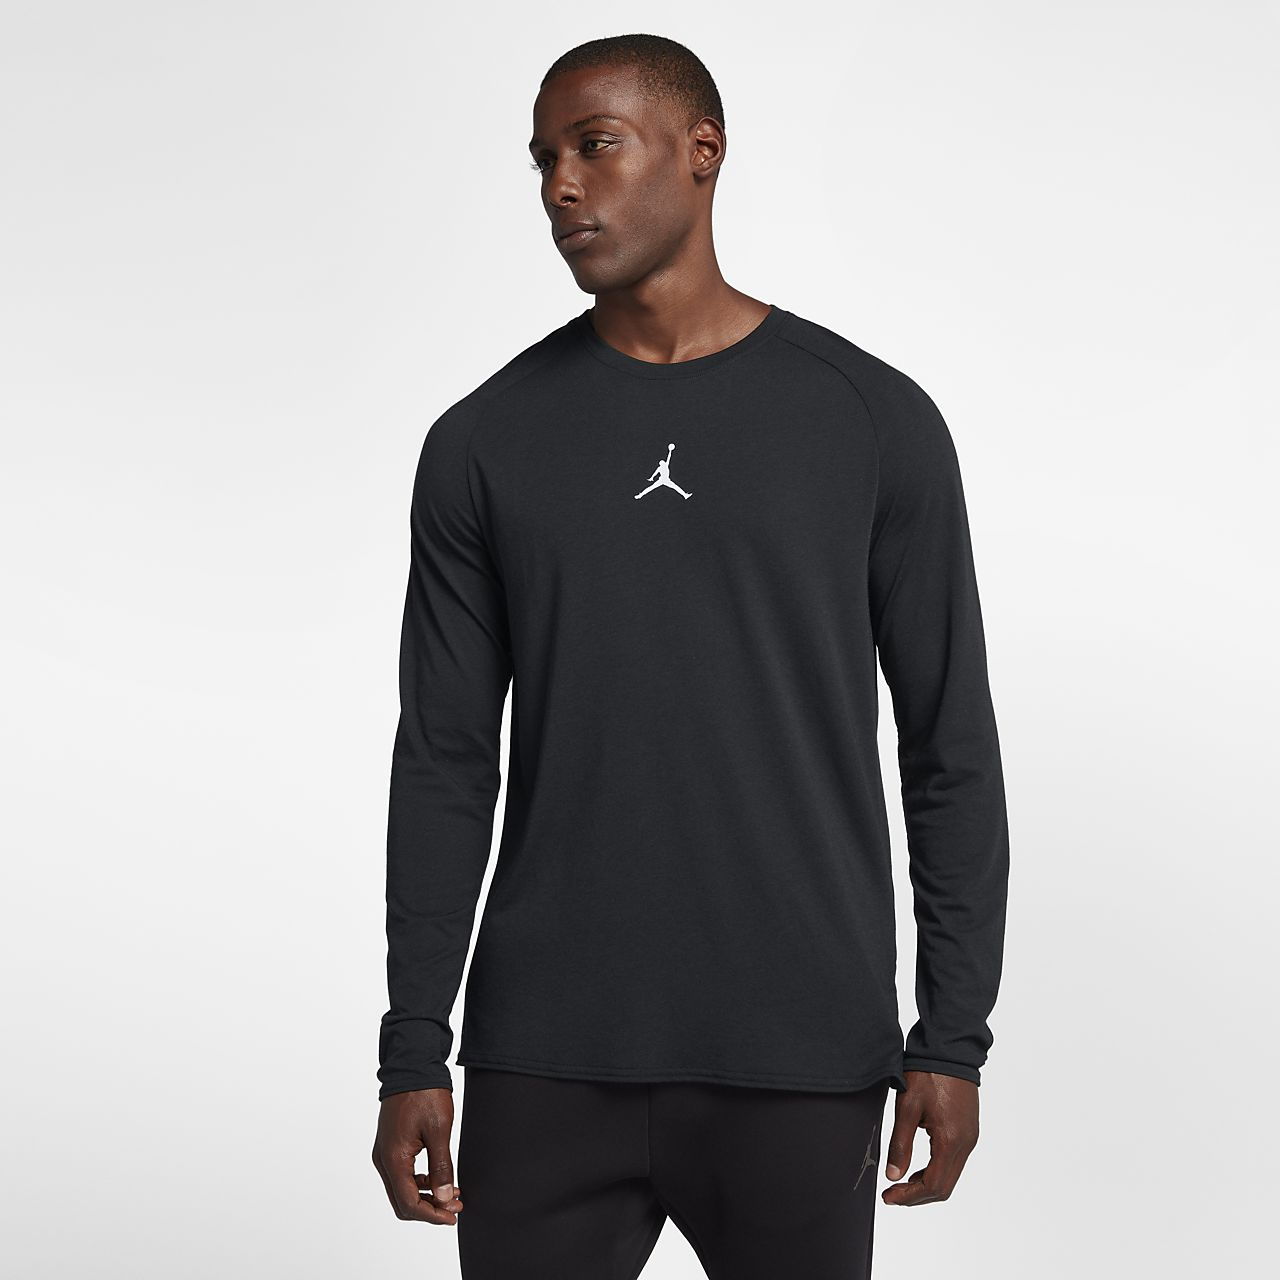 56d4101f Jordan Dri-FIT 23 Alpha Men's Long Sleeve Training Top. Nike.com